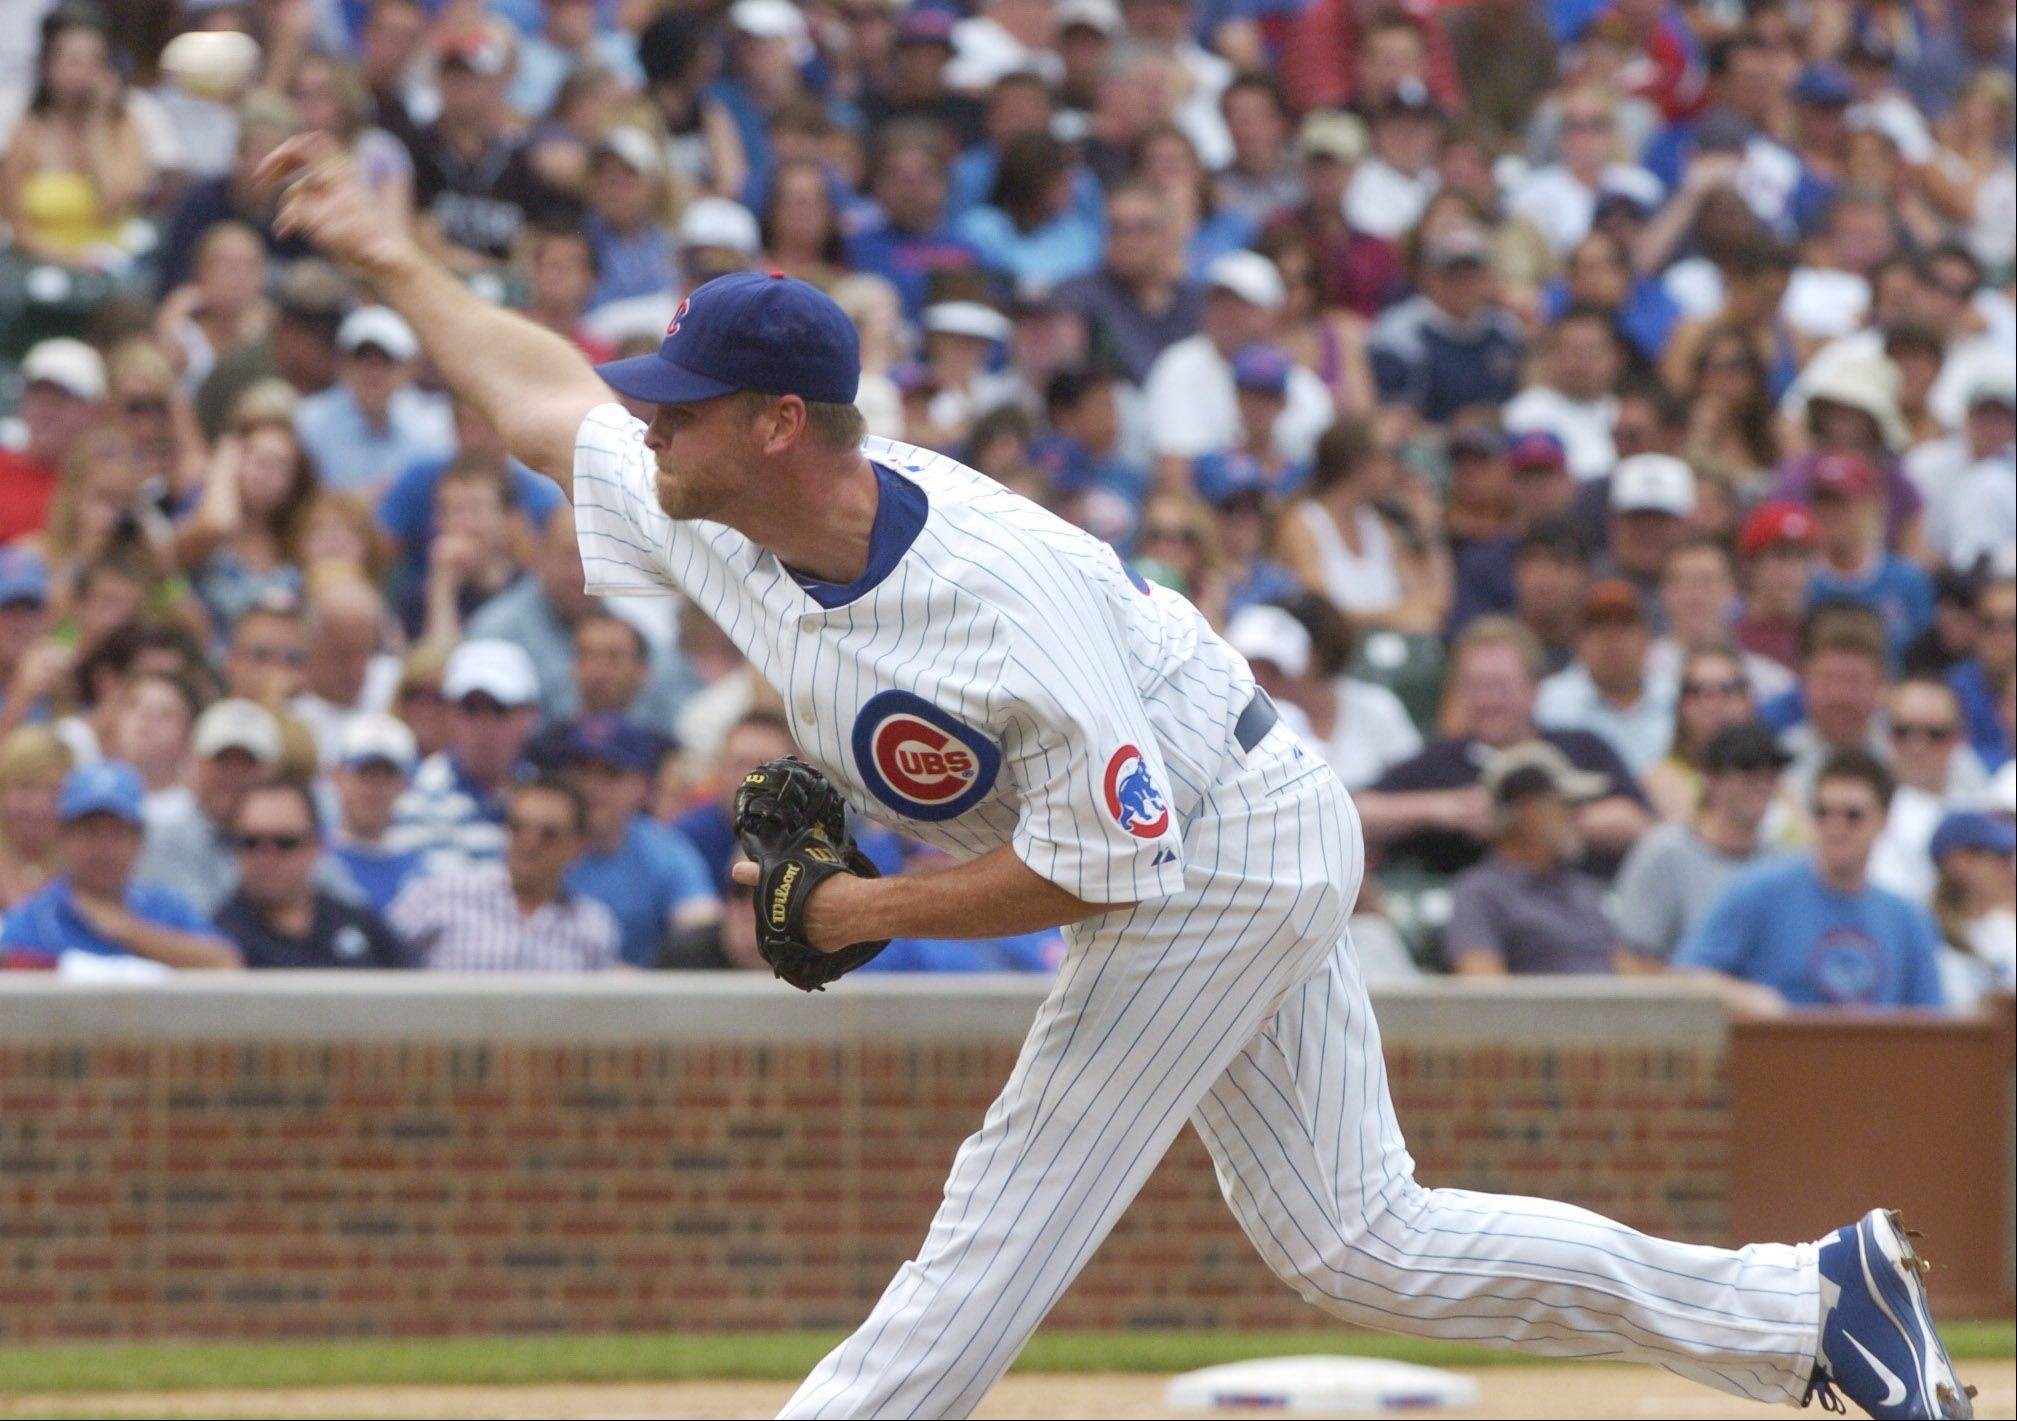 Kerry Wood of the Cubs makes an appearance during Friday's game against the White Sox.